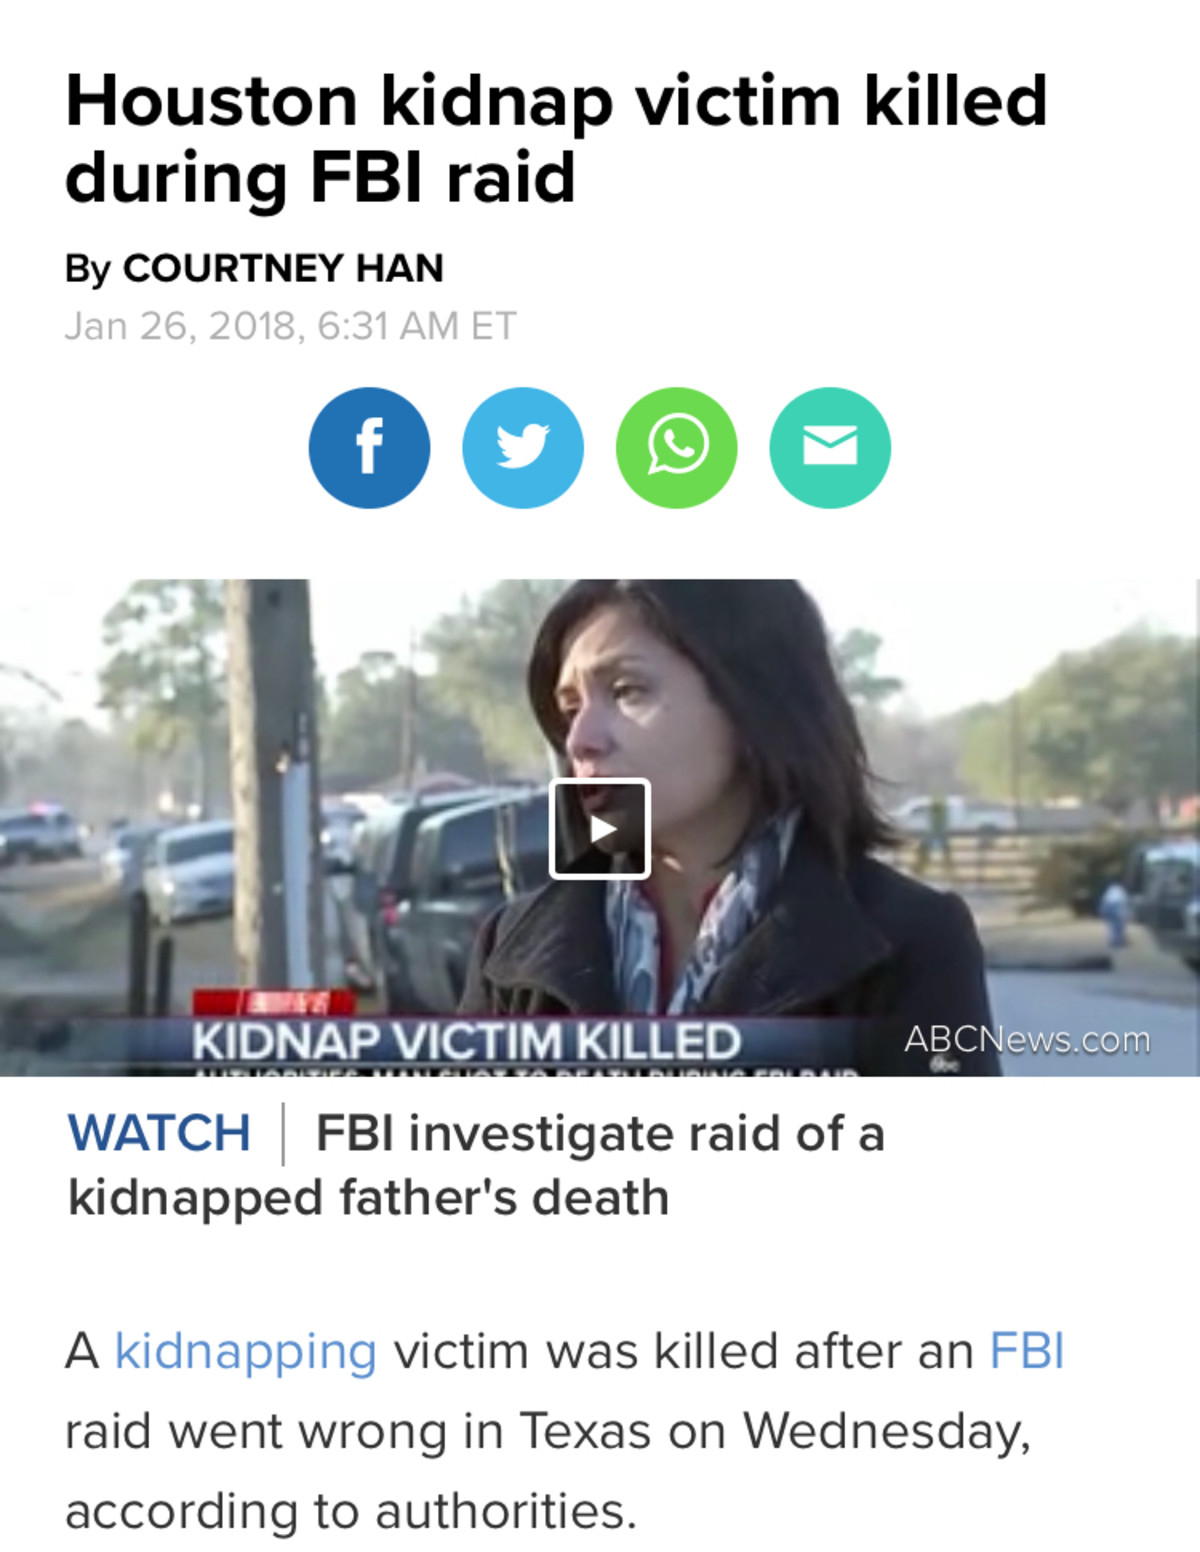 Etevepond Verreduc Divolato. In all seriousness, my condolences to his family.. Houston kidnap victim killed during FBI raid By COURTNEY HAN Jan 26, 2018. 6: ET